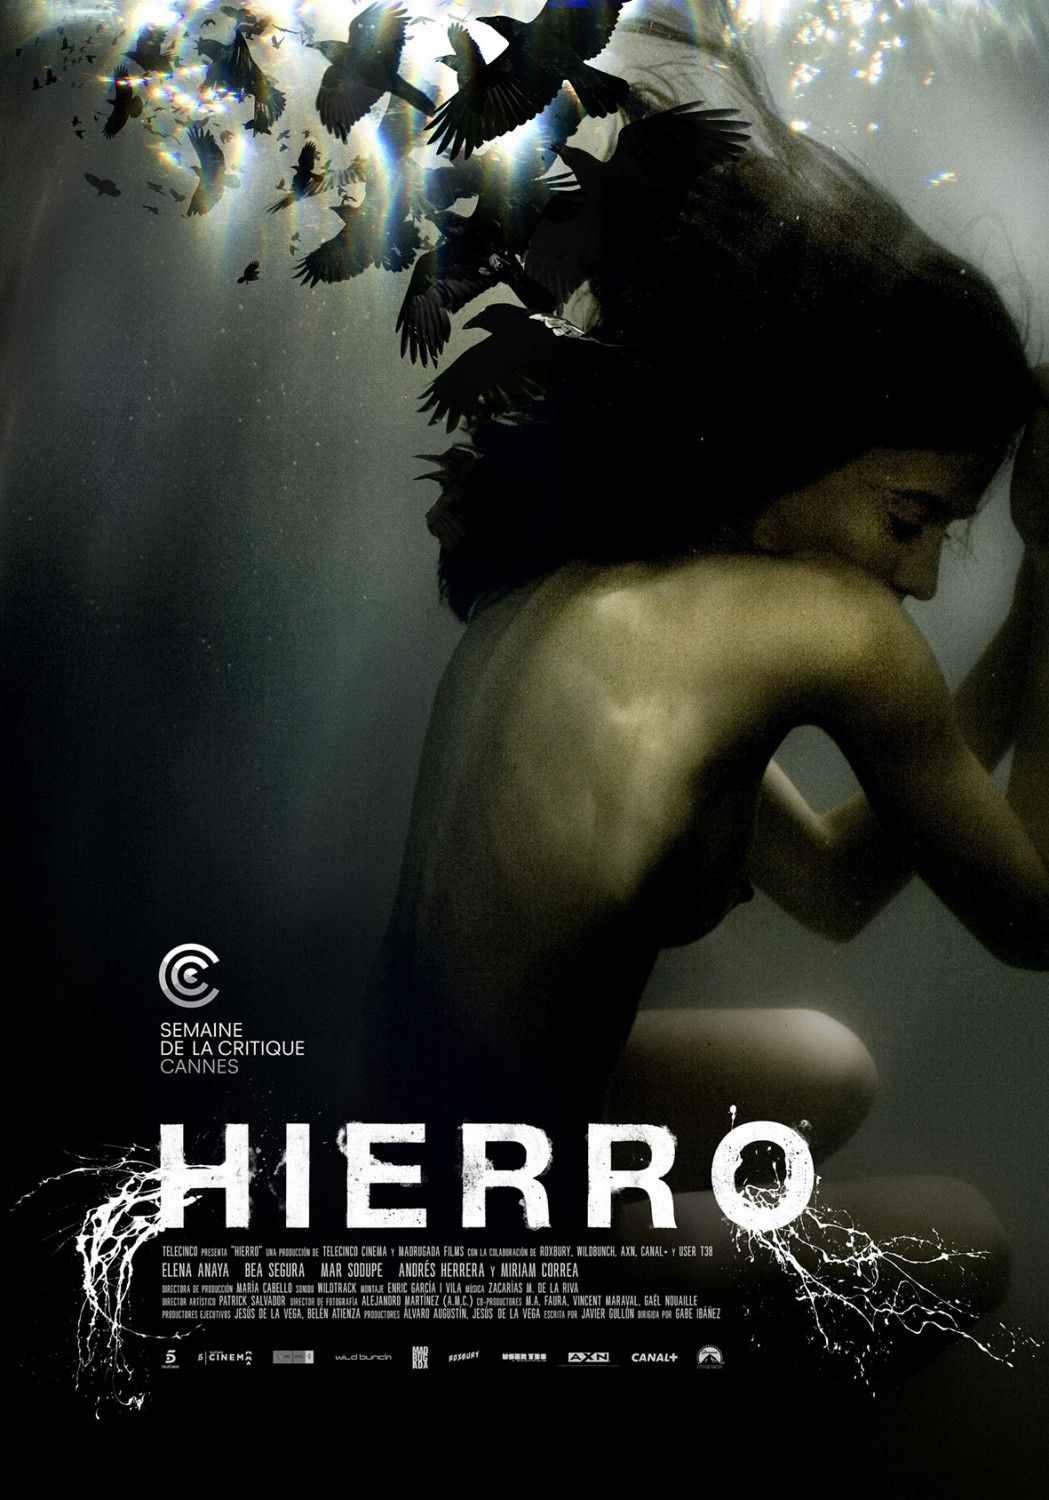 hierro_ver4_xlg